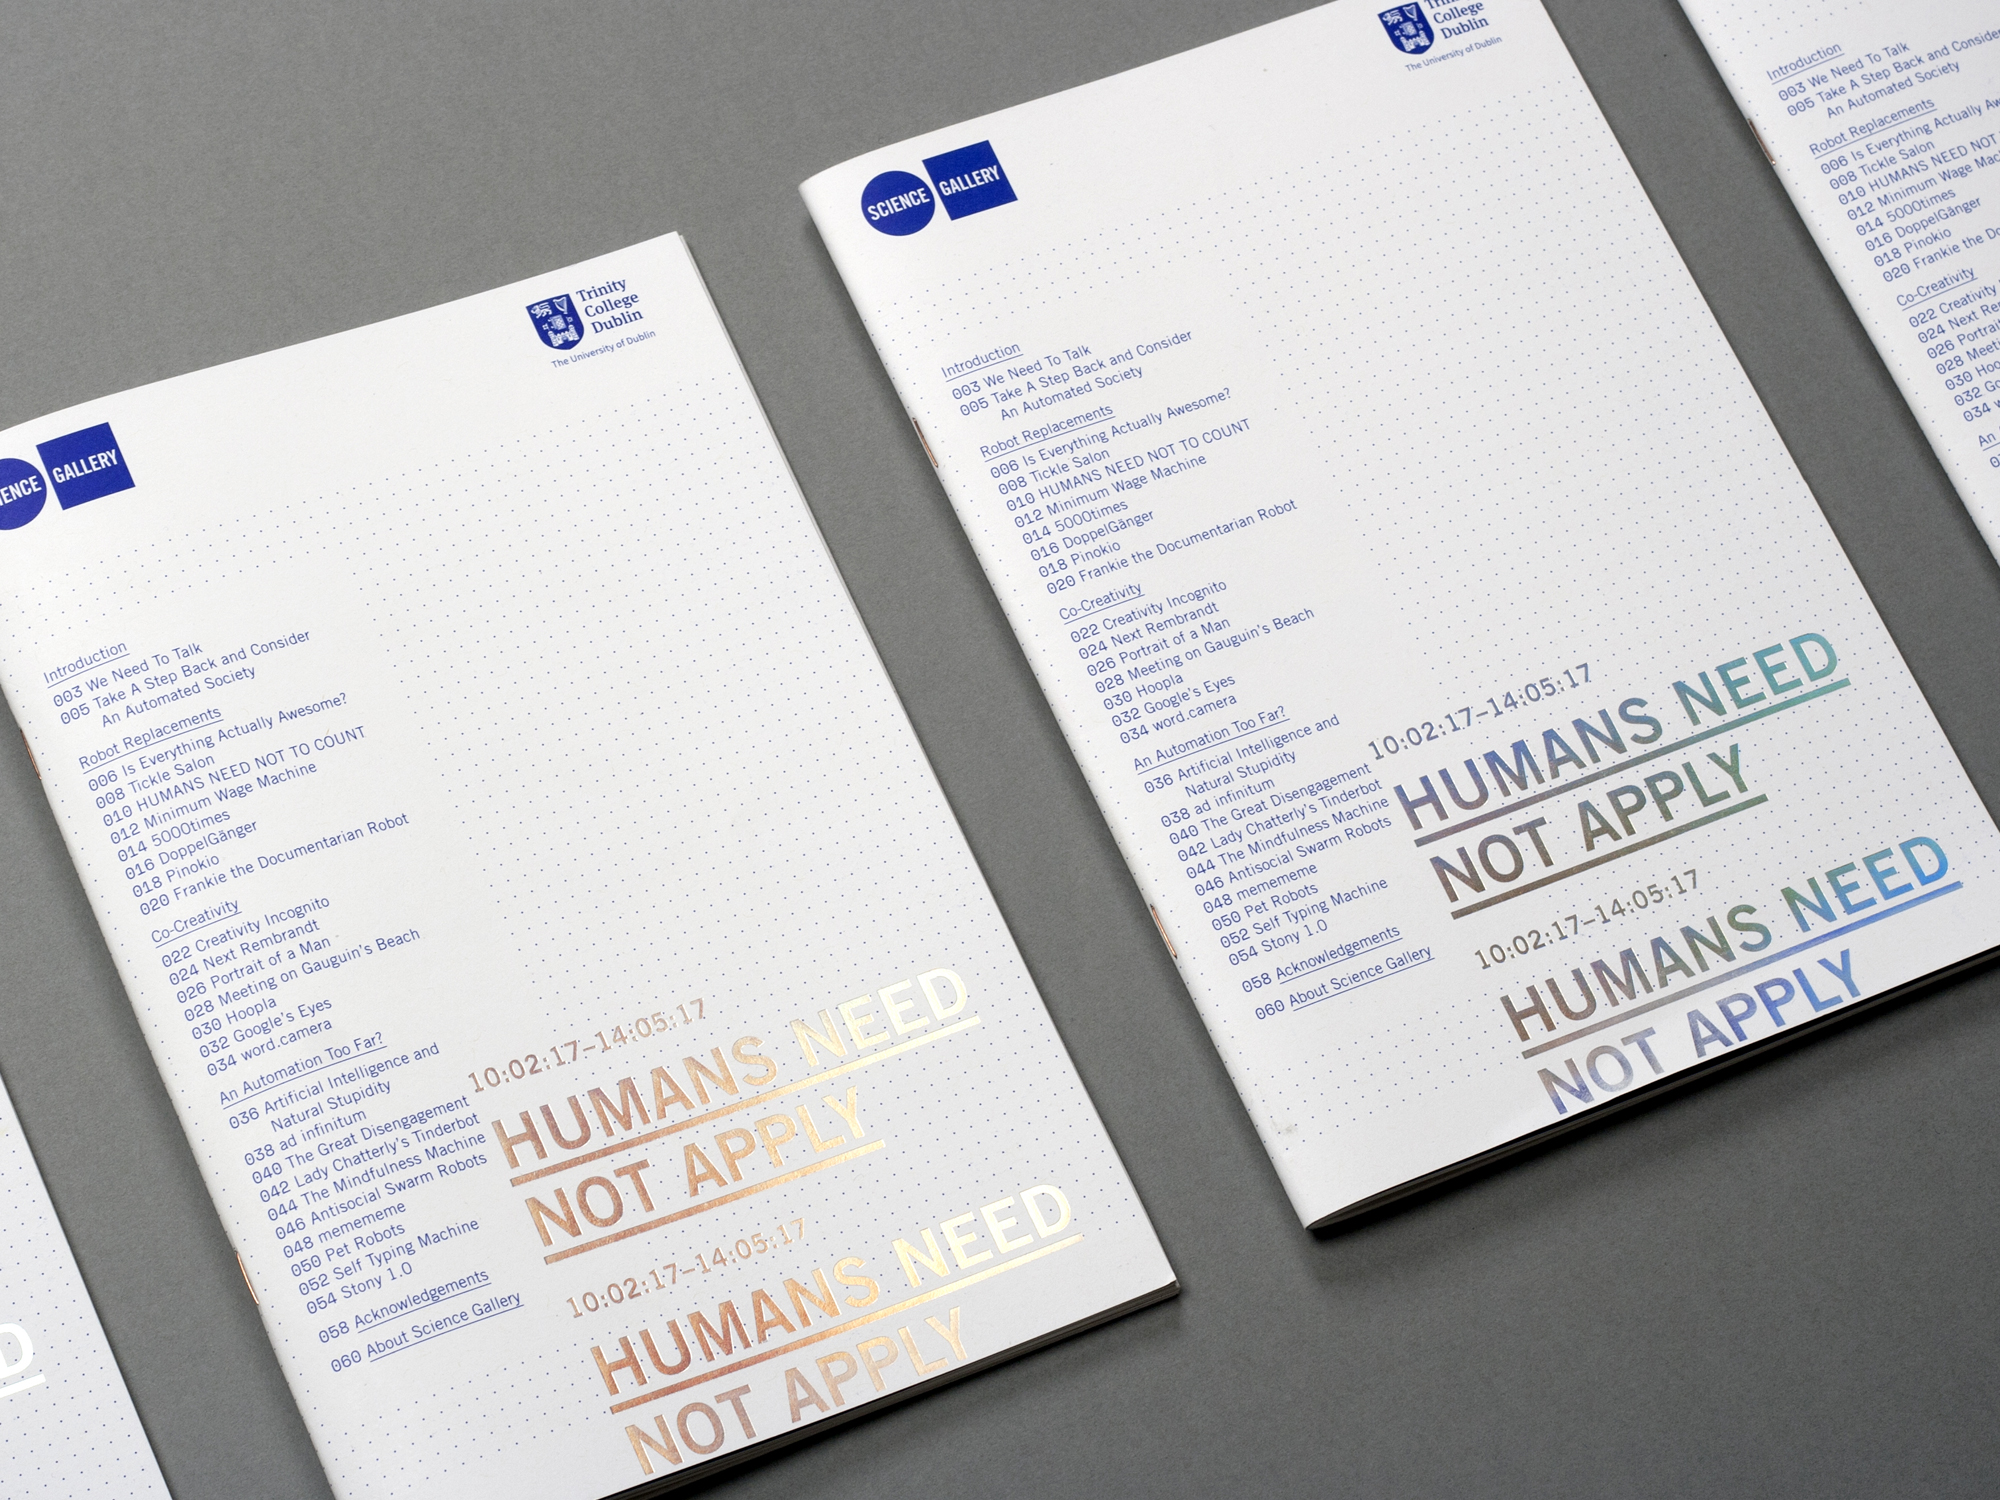 Cover image: Humans Need Not Apply